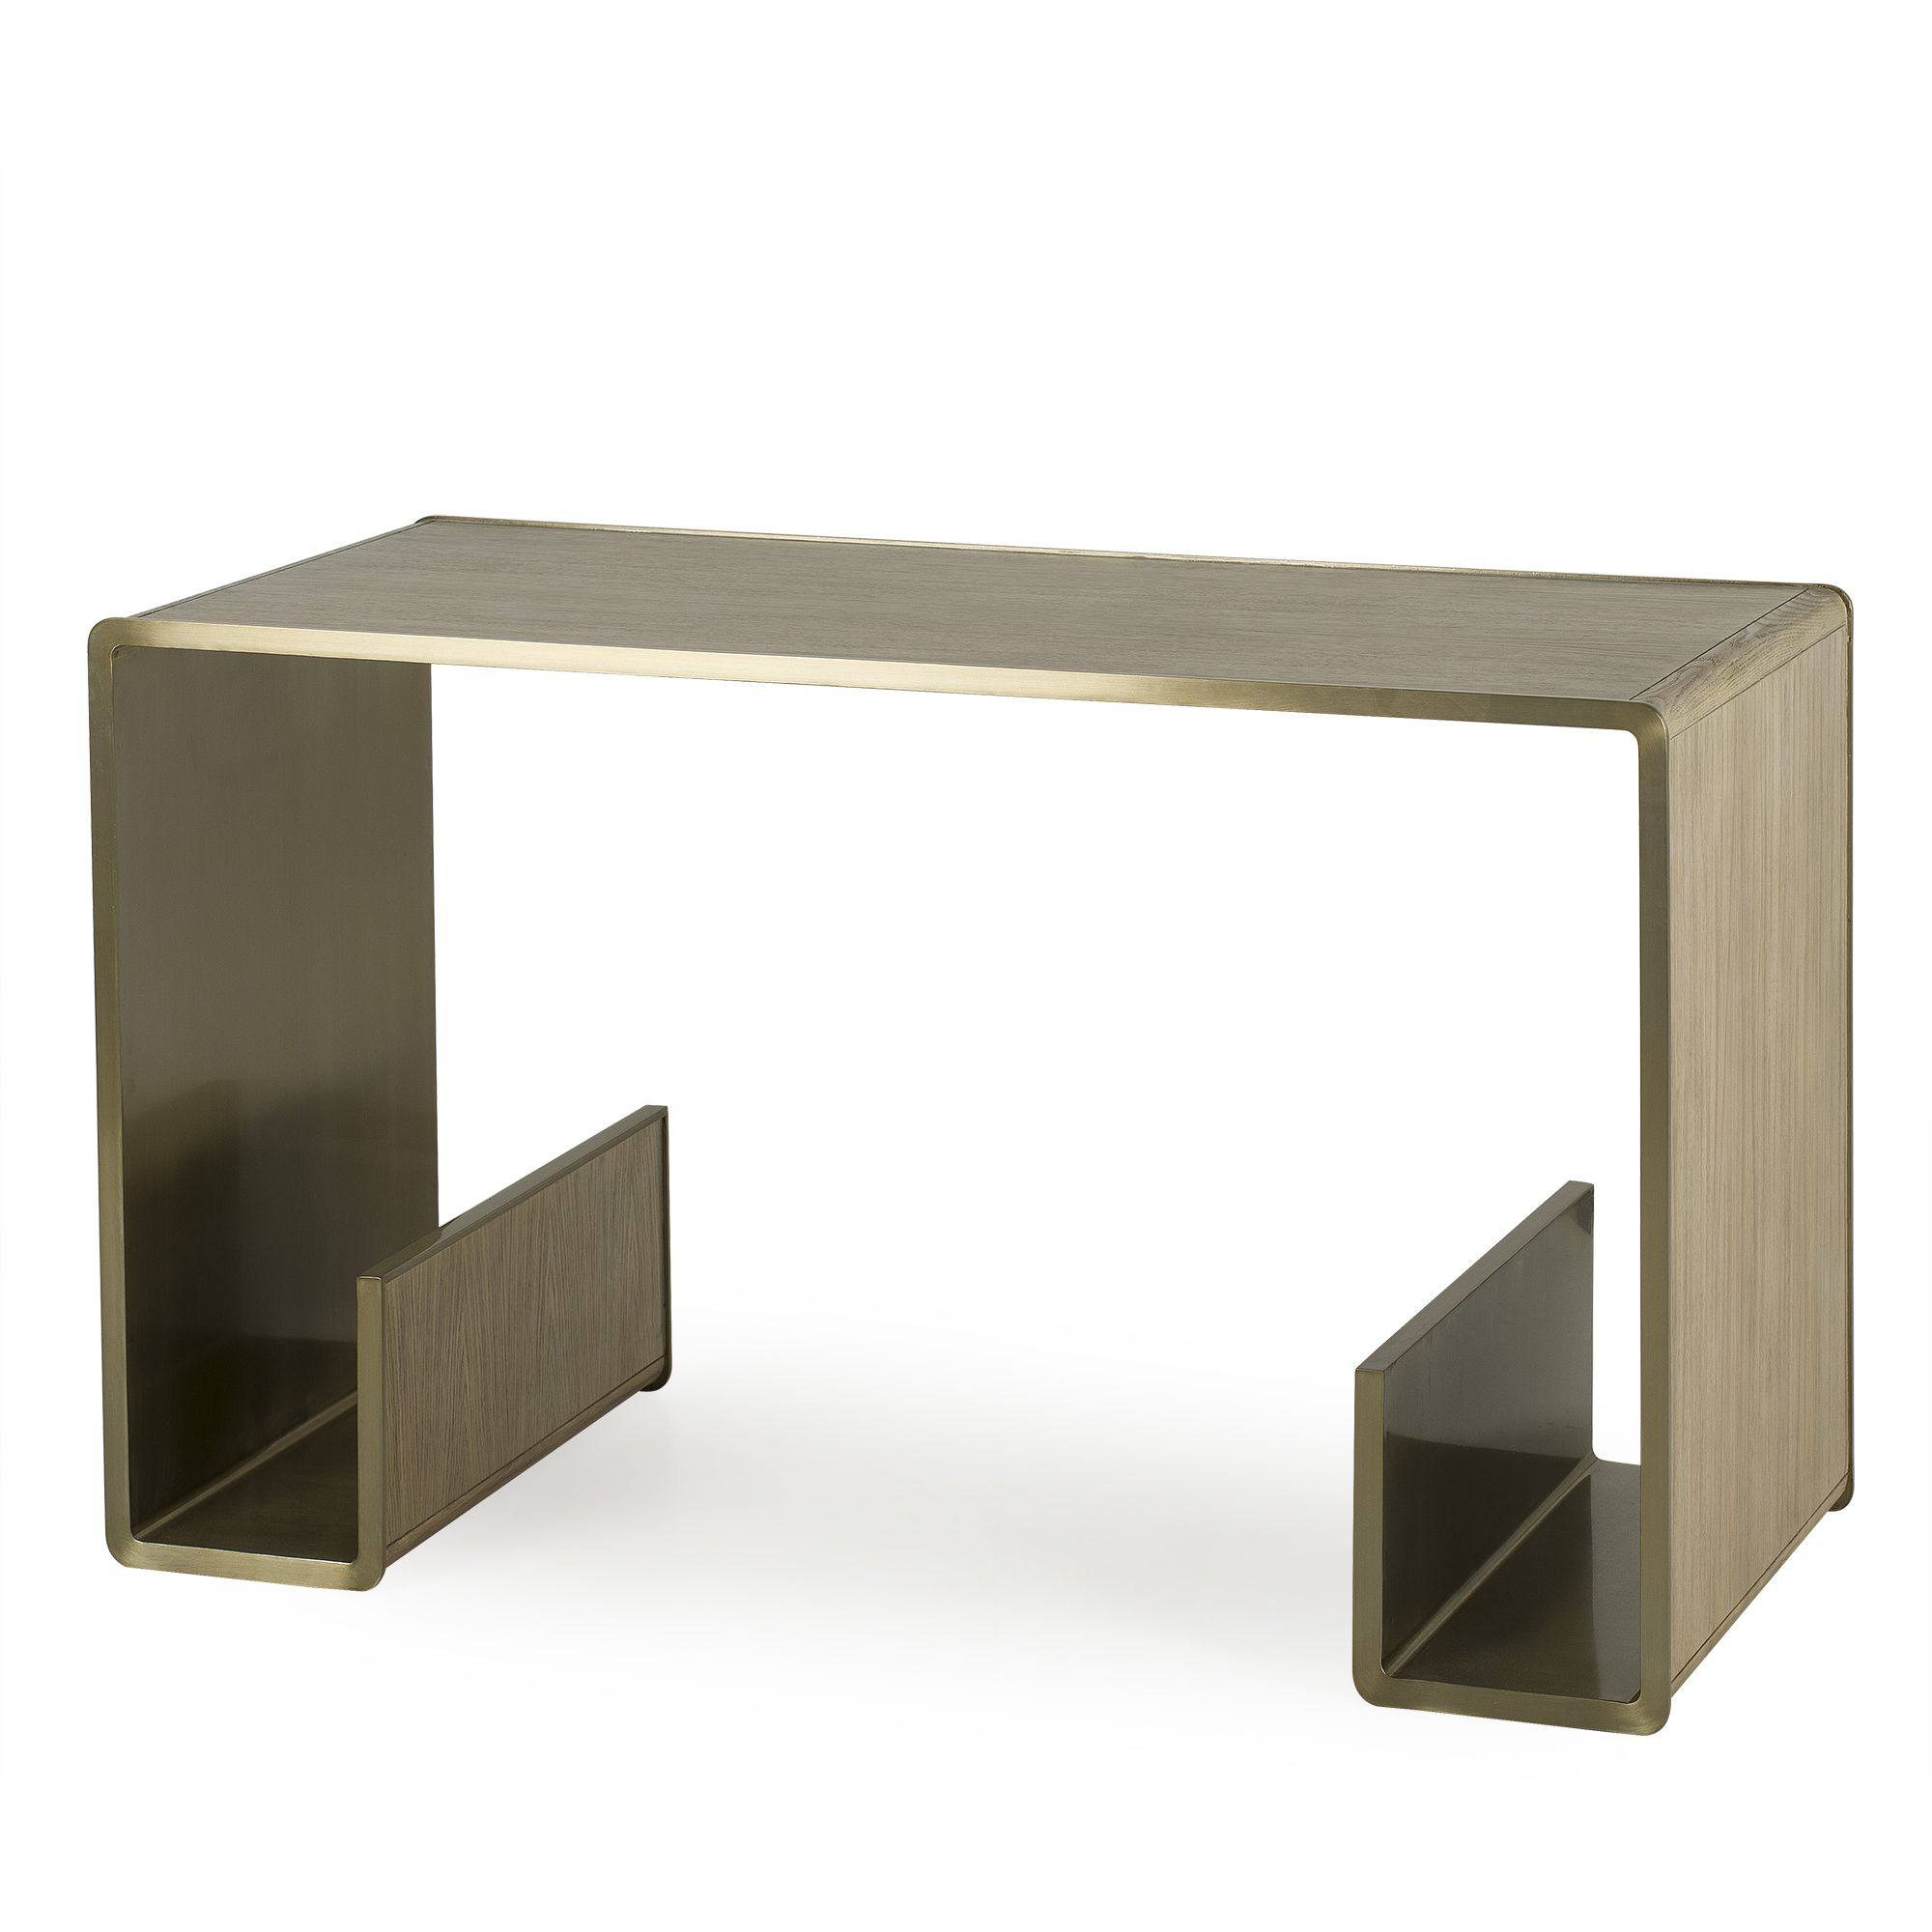 Pin by UNQQ on Pinterest Kelly hoppen Console tables and